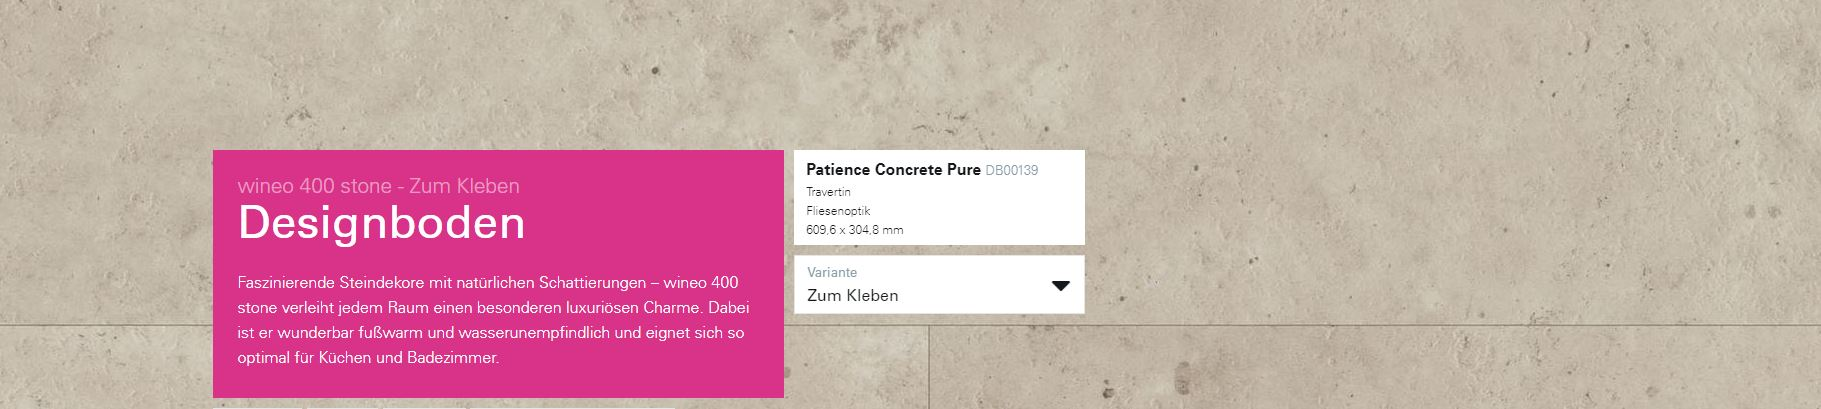 Wineo 400 Fortune Steindesign Patience Concrete Pure DB00139 @ Boden4You.com Design Bodenbelag günstig und Trsuted Shop sicher kaufen